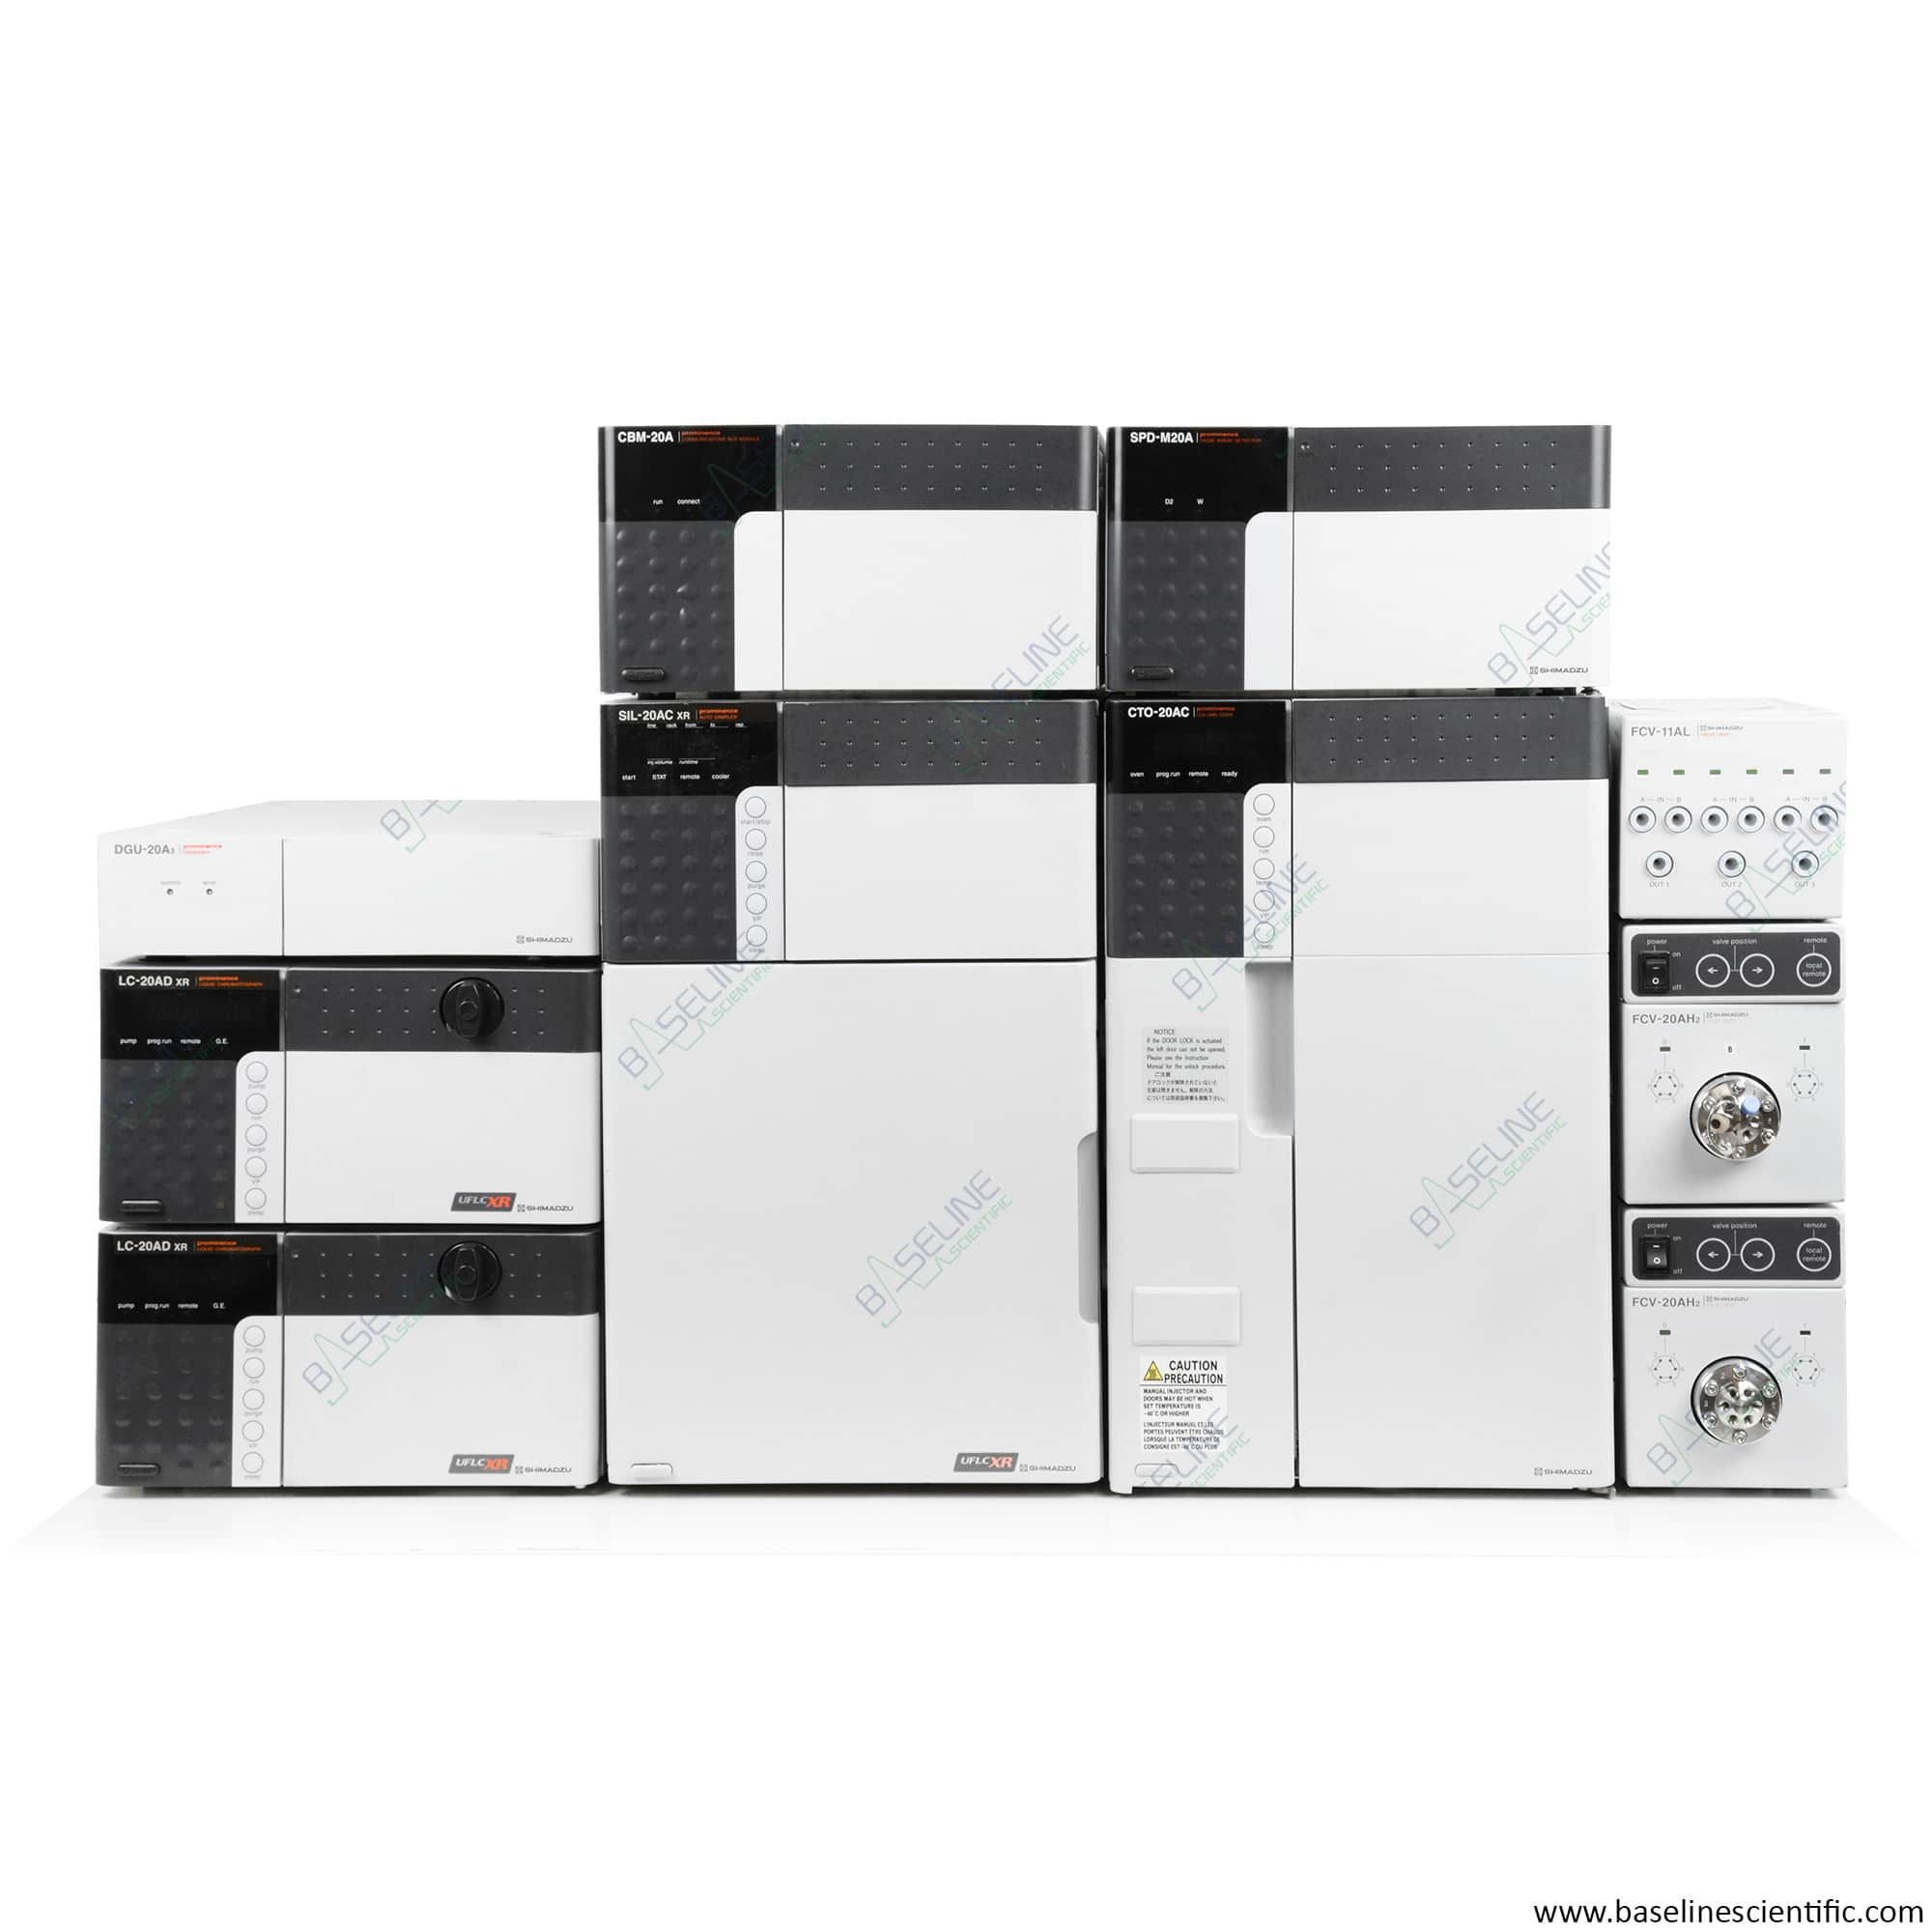 Refurbished Shimadzu Prominence FPLC/HPLC System with ONE YEAR WARRANTY